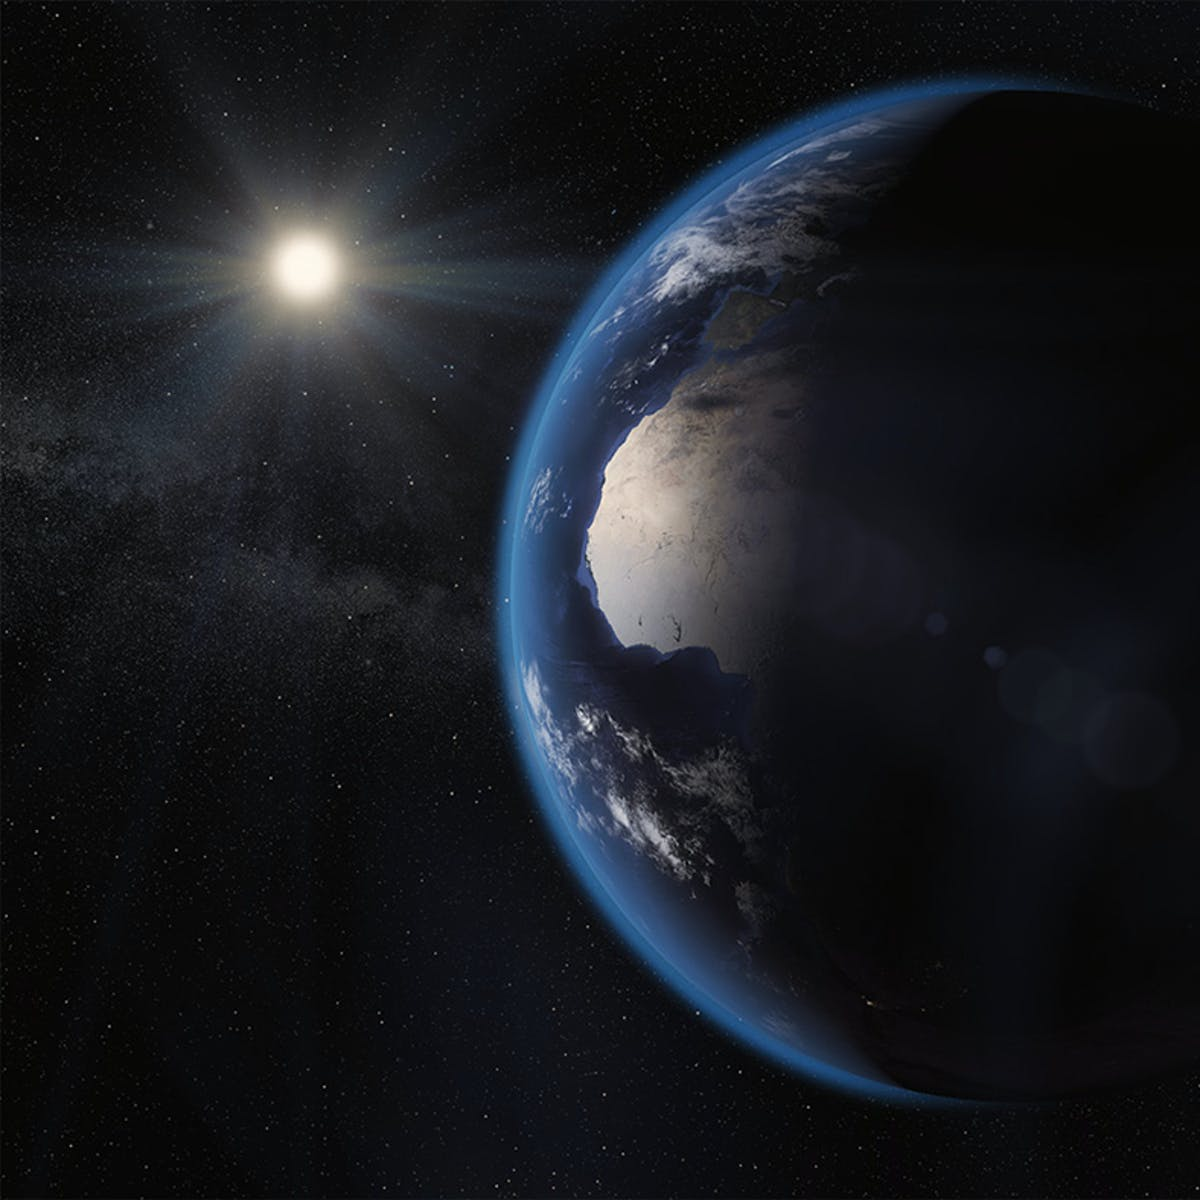 NASA is zooming in on exoplanets to see what their atmosphere is like